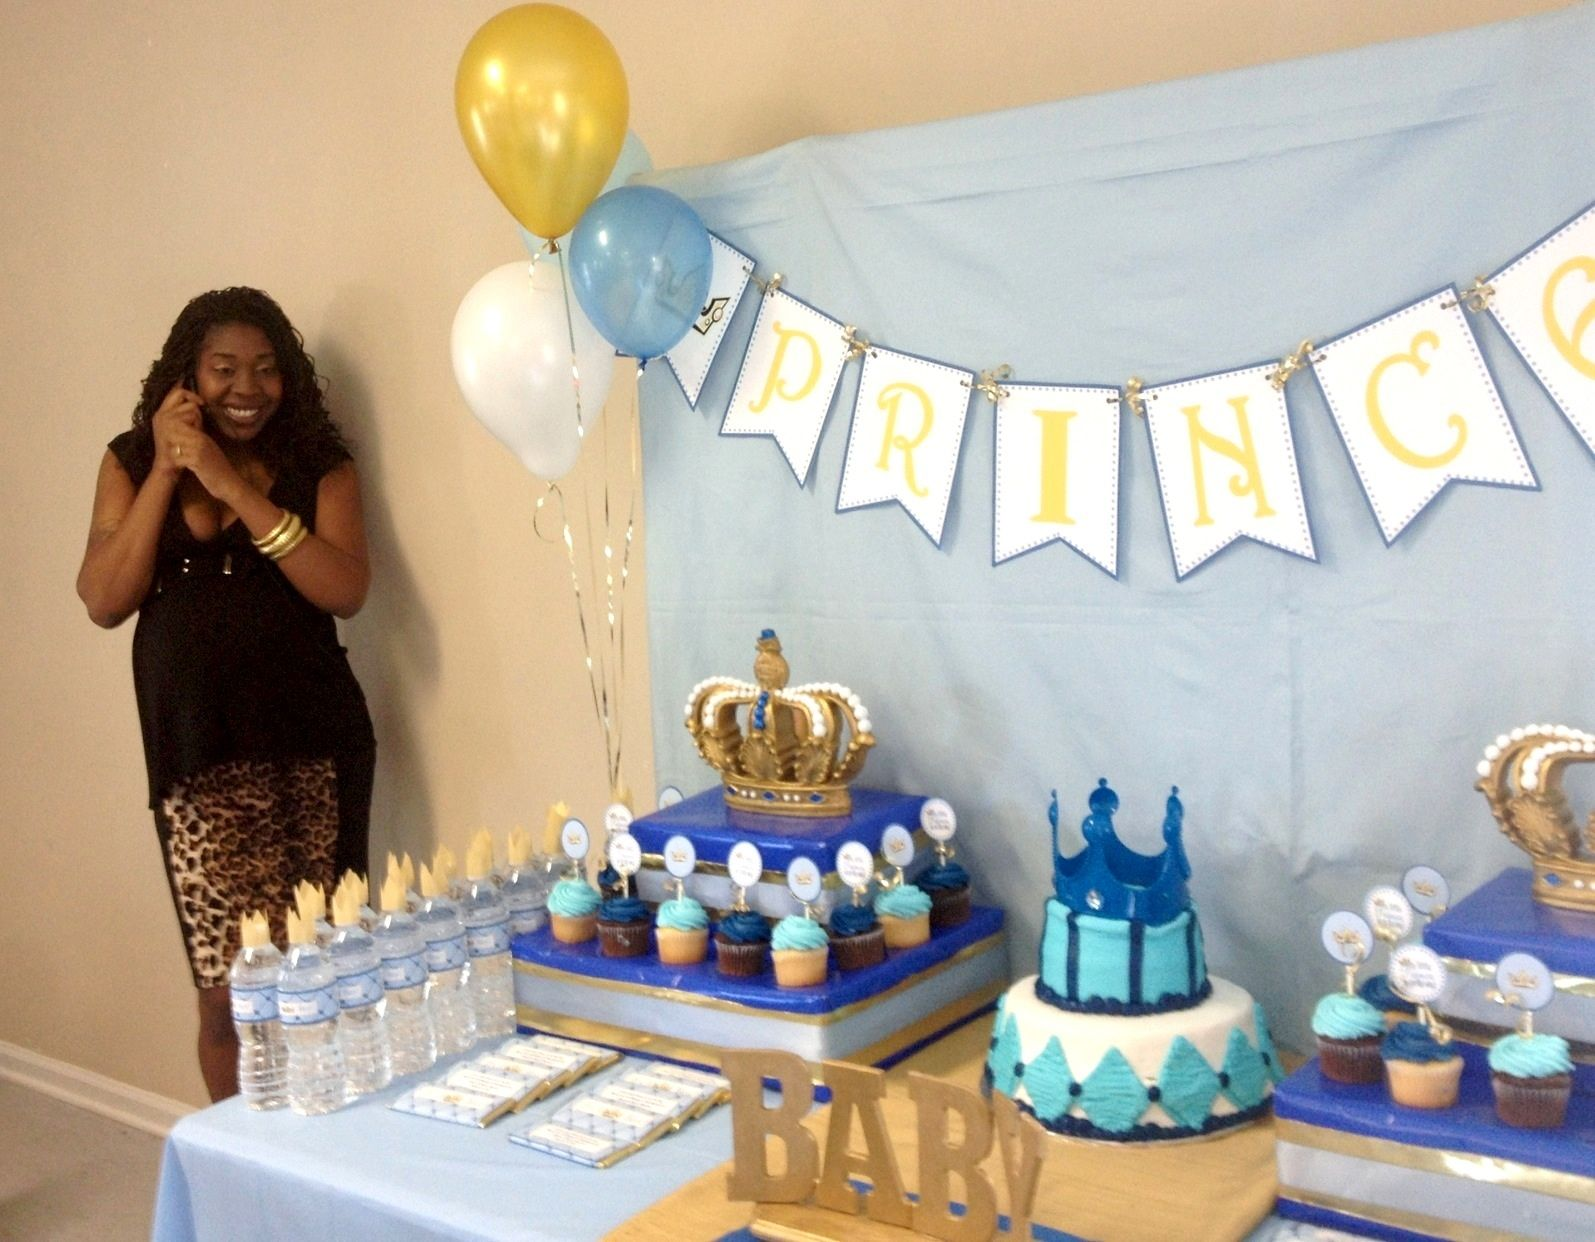 Perfect We Heart Parties: Little Prince Baby Shower?PartyImageIDu003dcde50157 2355 4de9